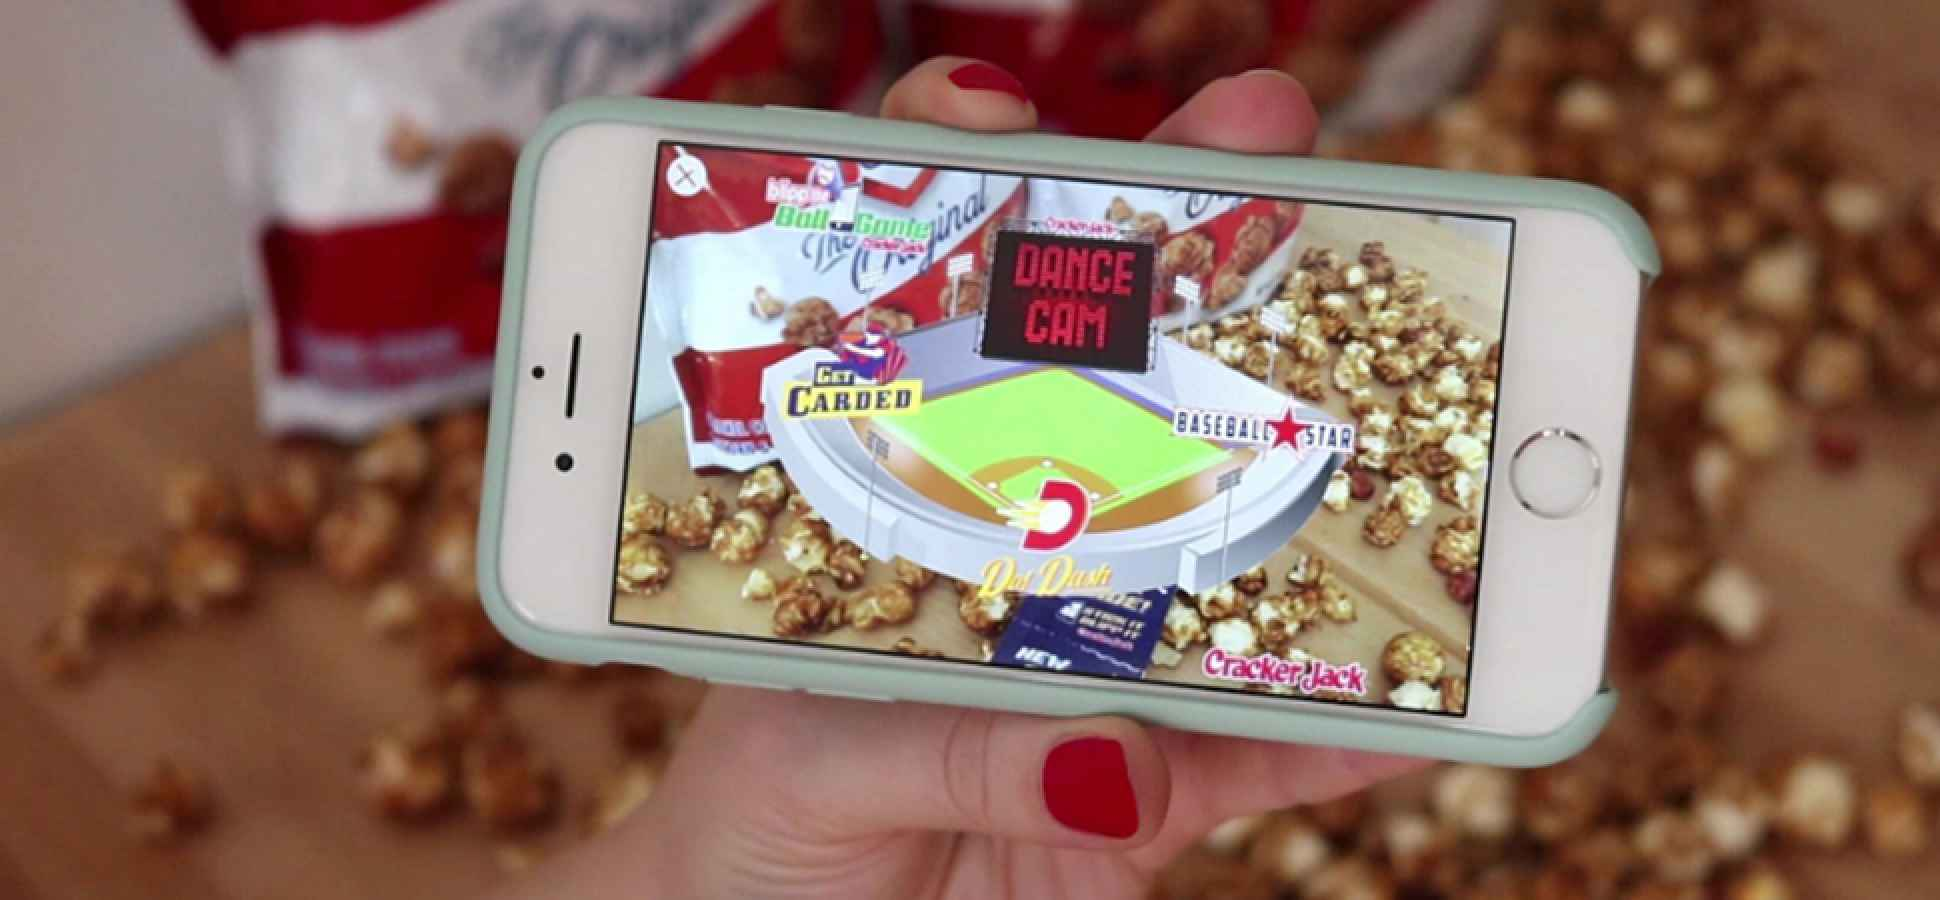 Cracker Jack Swaps Toys for a Prize That's Decidedly More High Tech